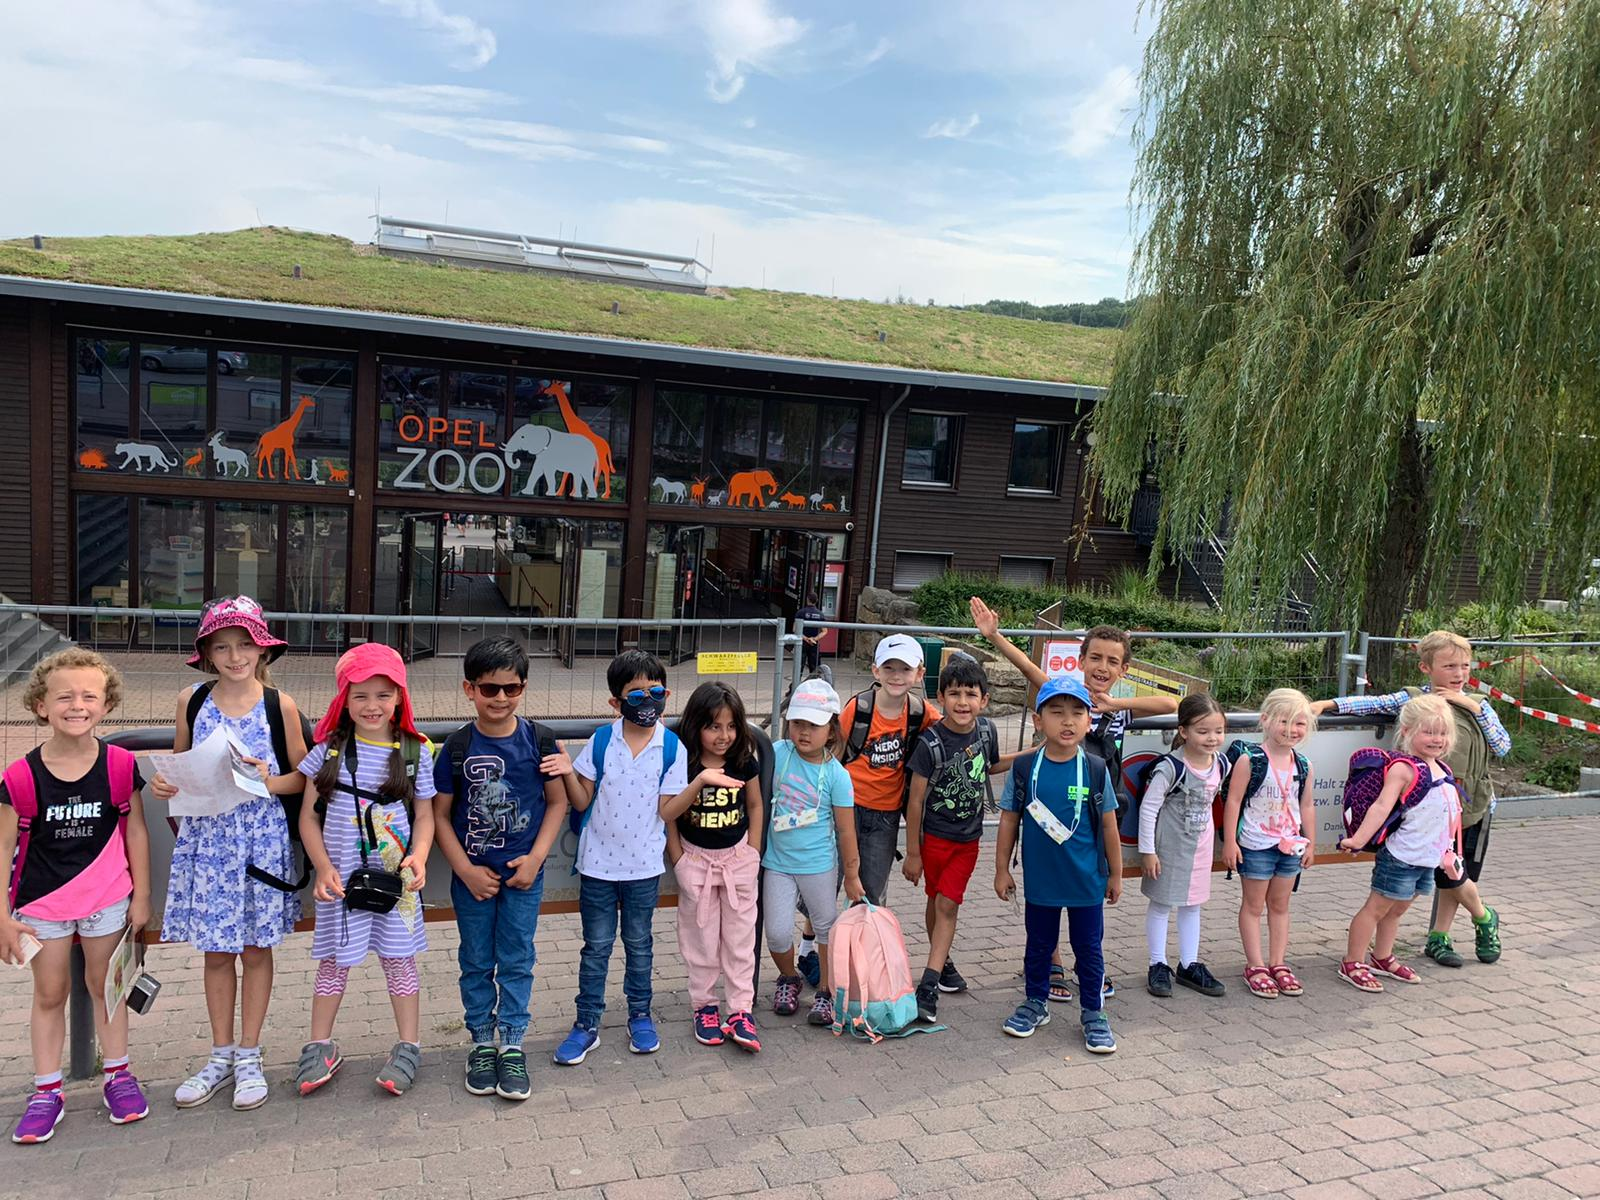 Students of SIS Frankfurt on an excursion to Opel Zoo